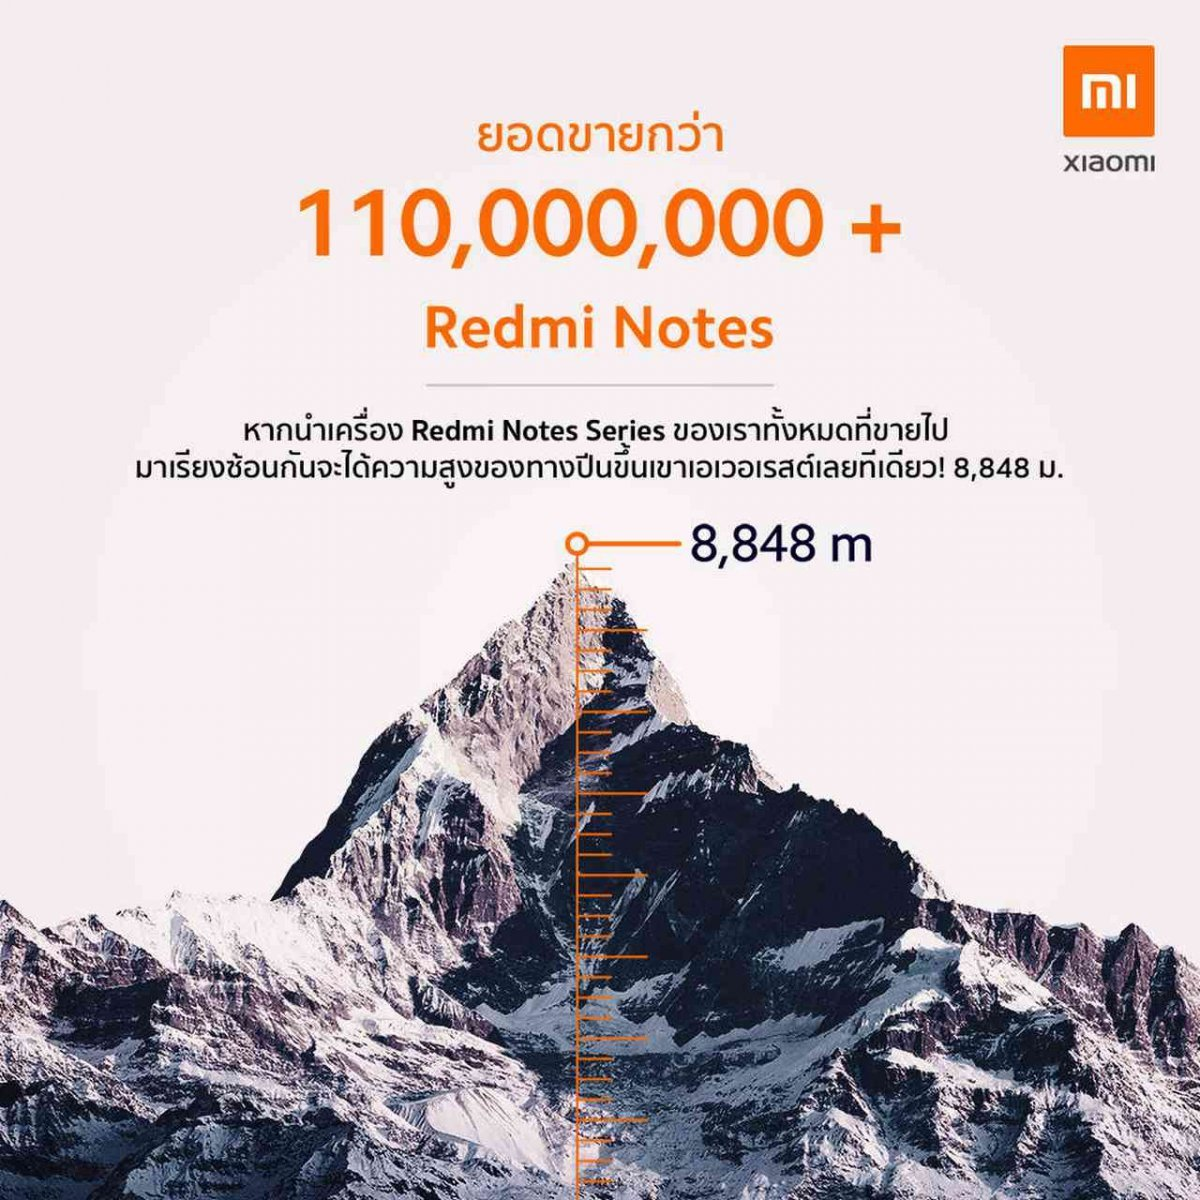 Redmi Note Series has sold over 110 million units